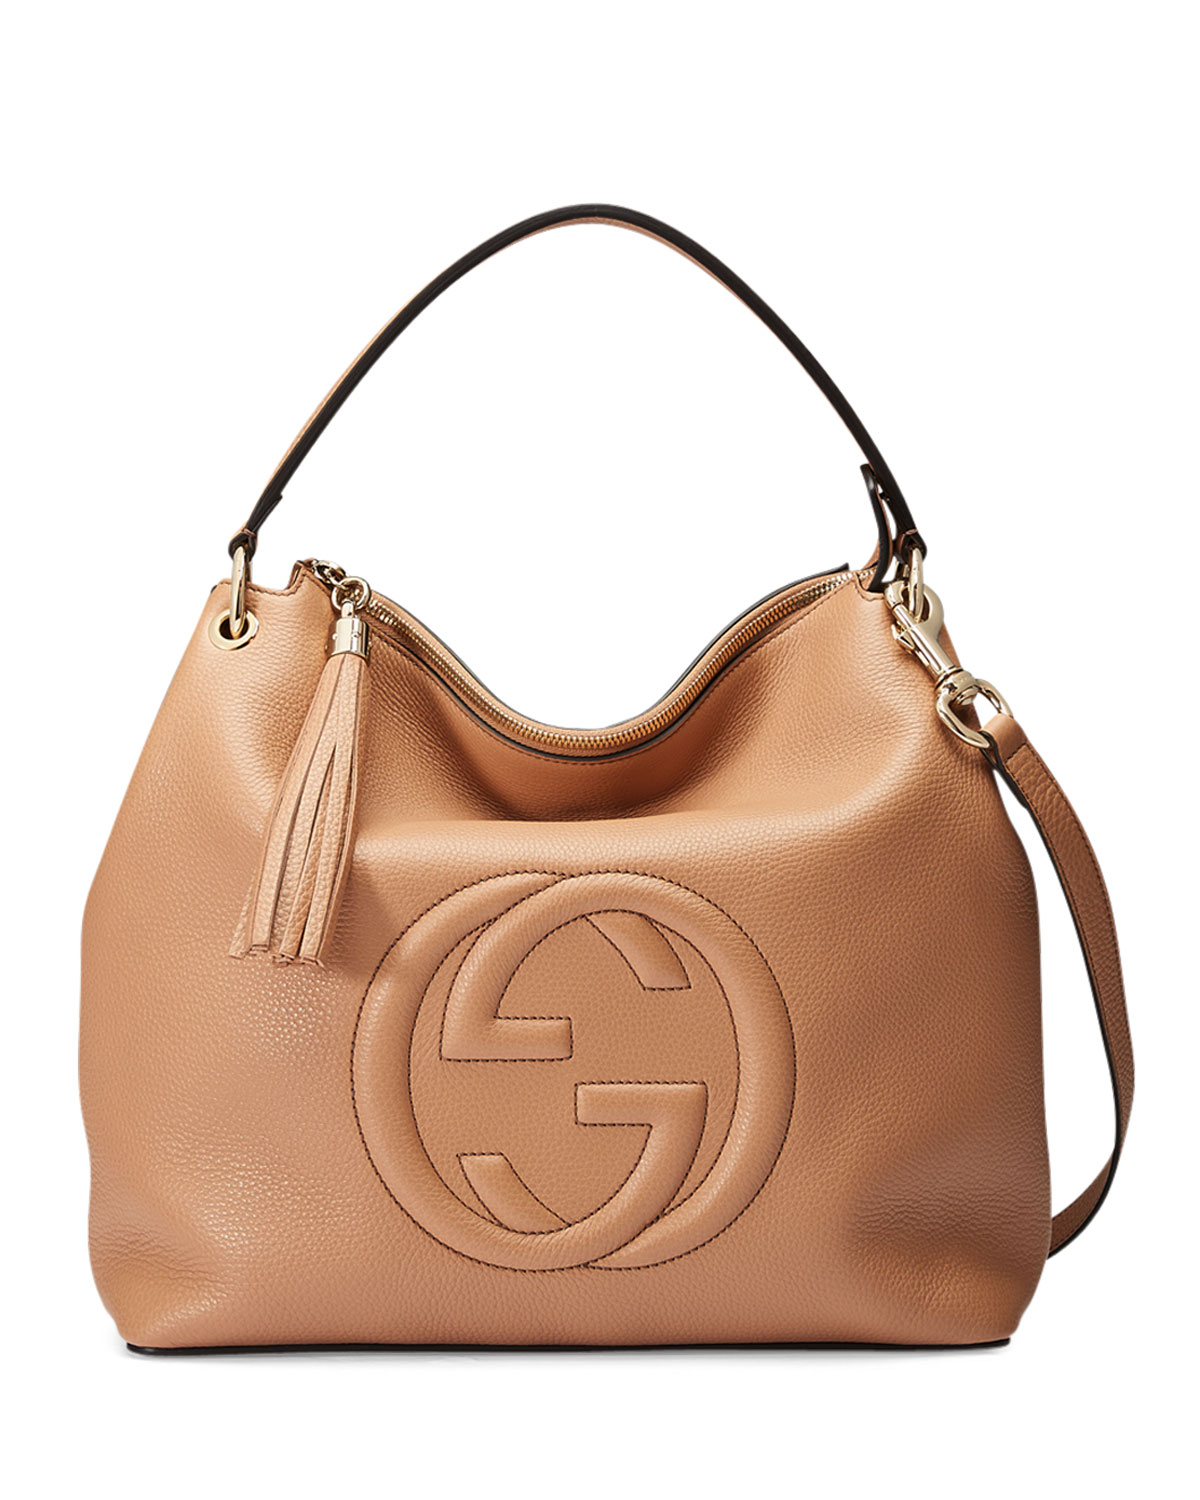 a71693302 Gucci Soho Large Leather Hobo Bag, Camelia | Neiman Marcus